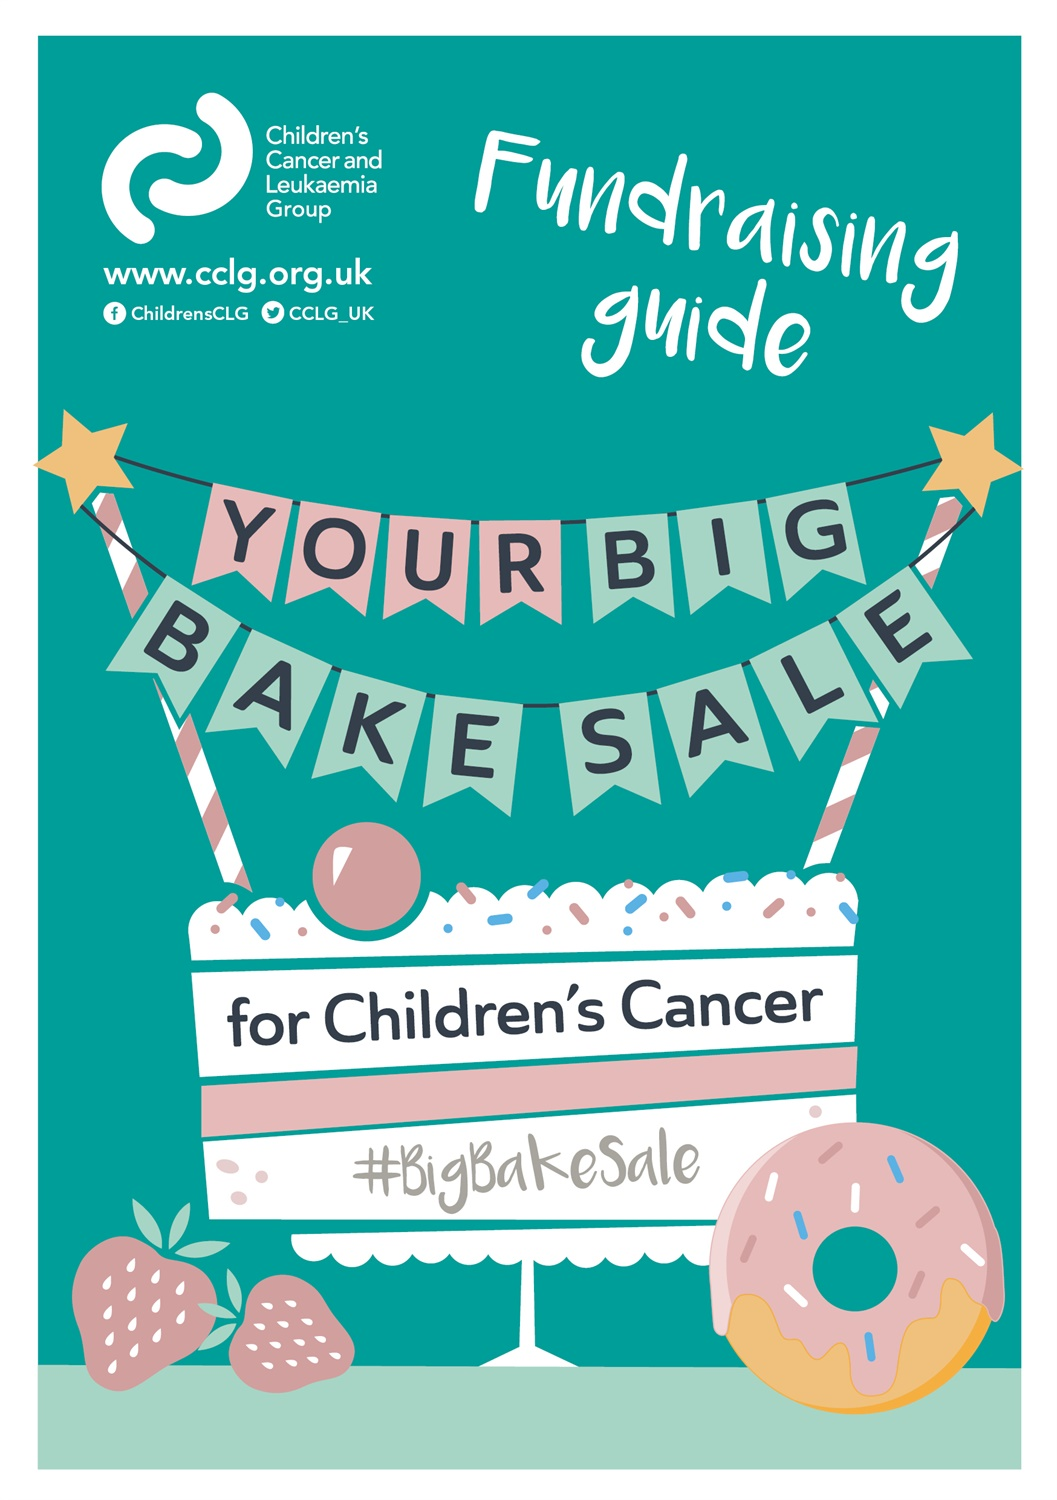 Bake Sale Fundraising Guide